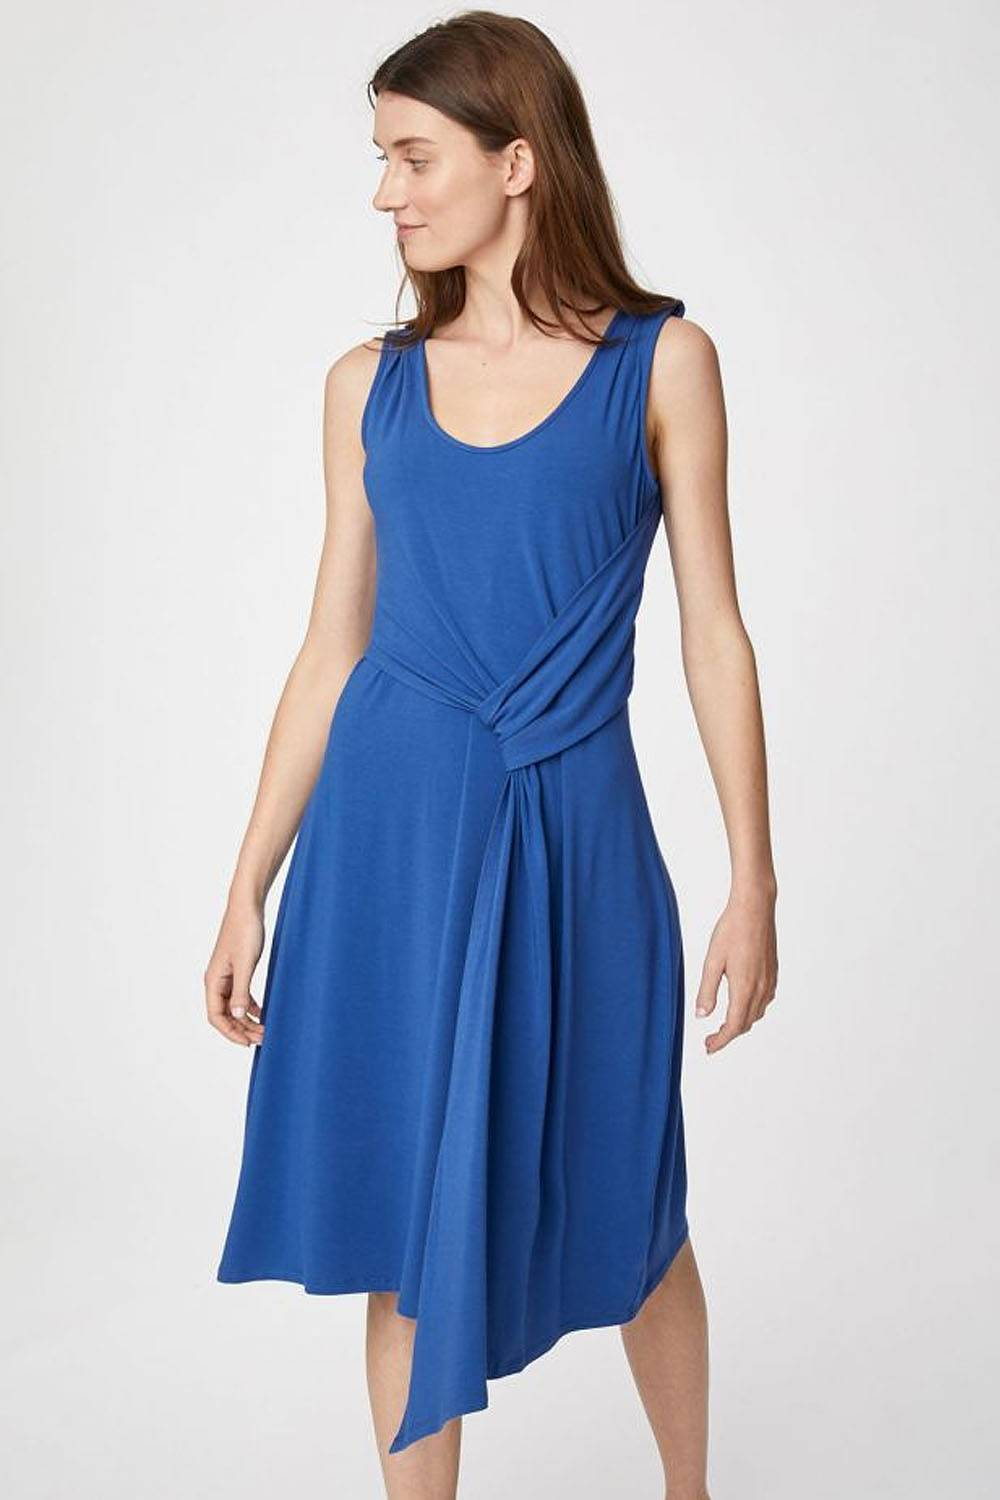 thought adorable cute casual dress